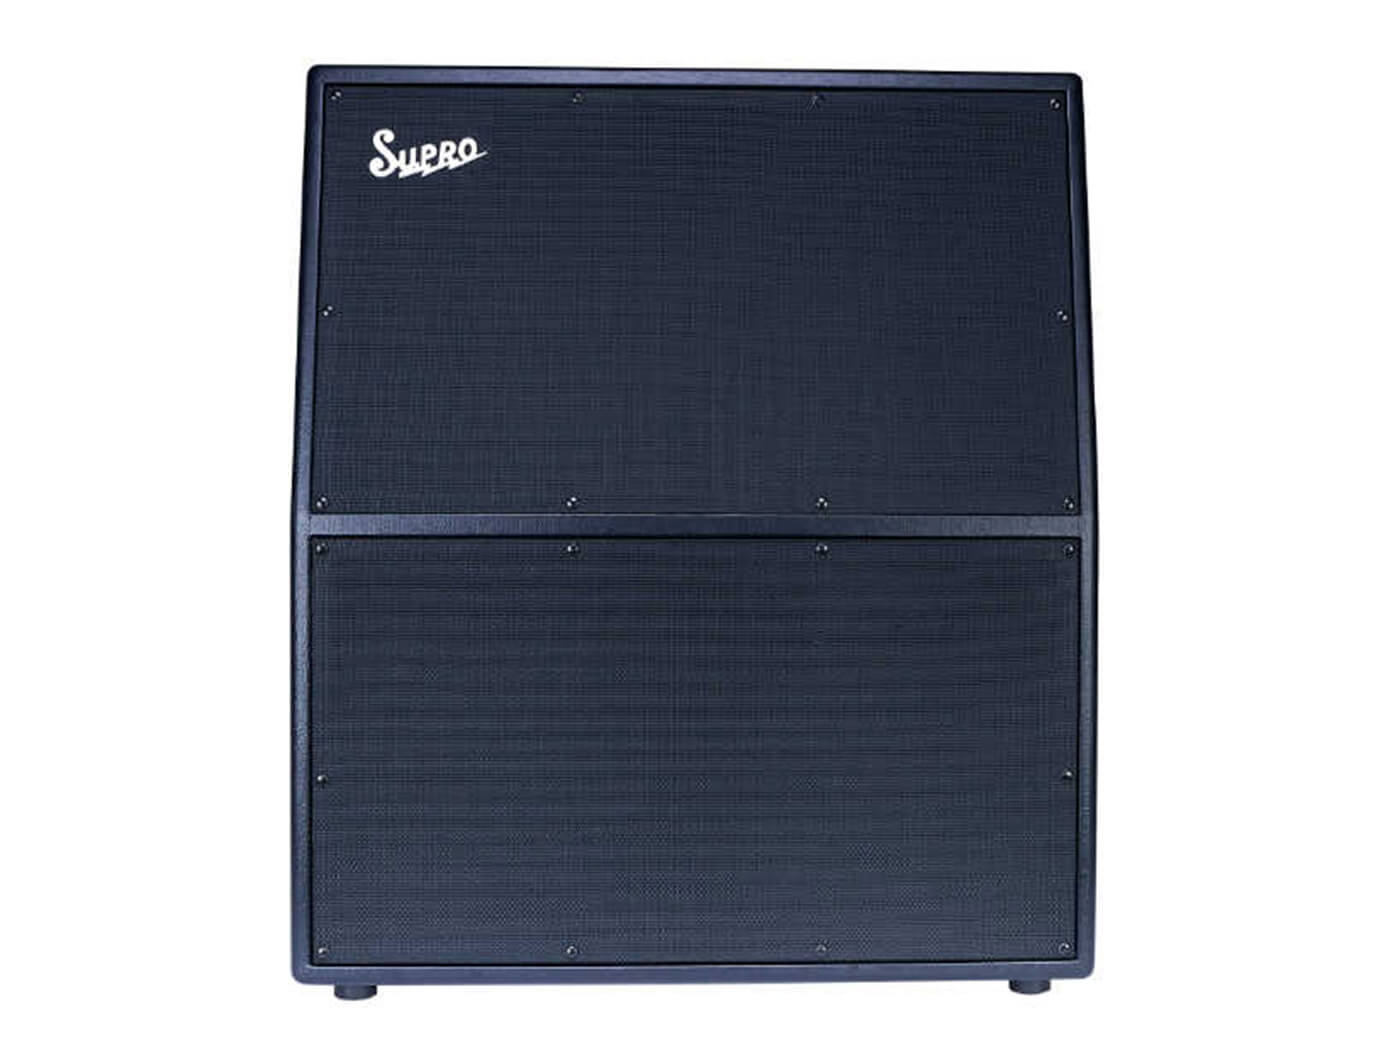 Supro Galaxy 4x12 cab front